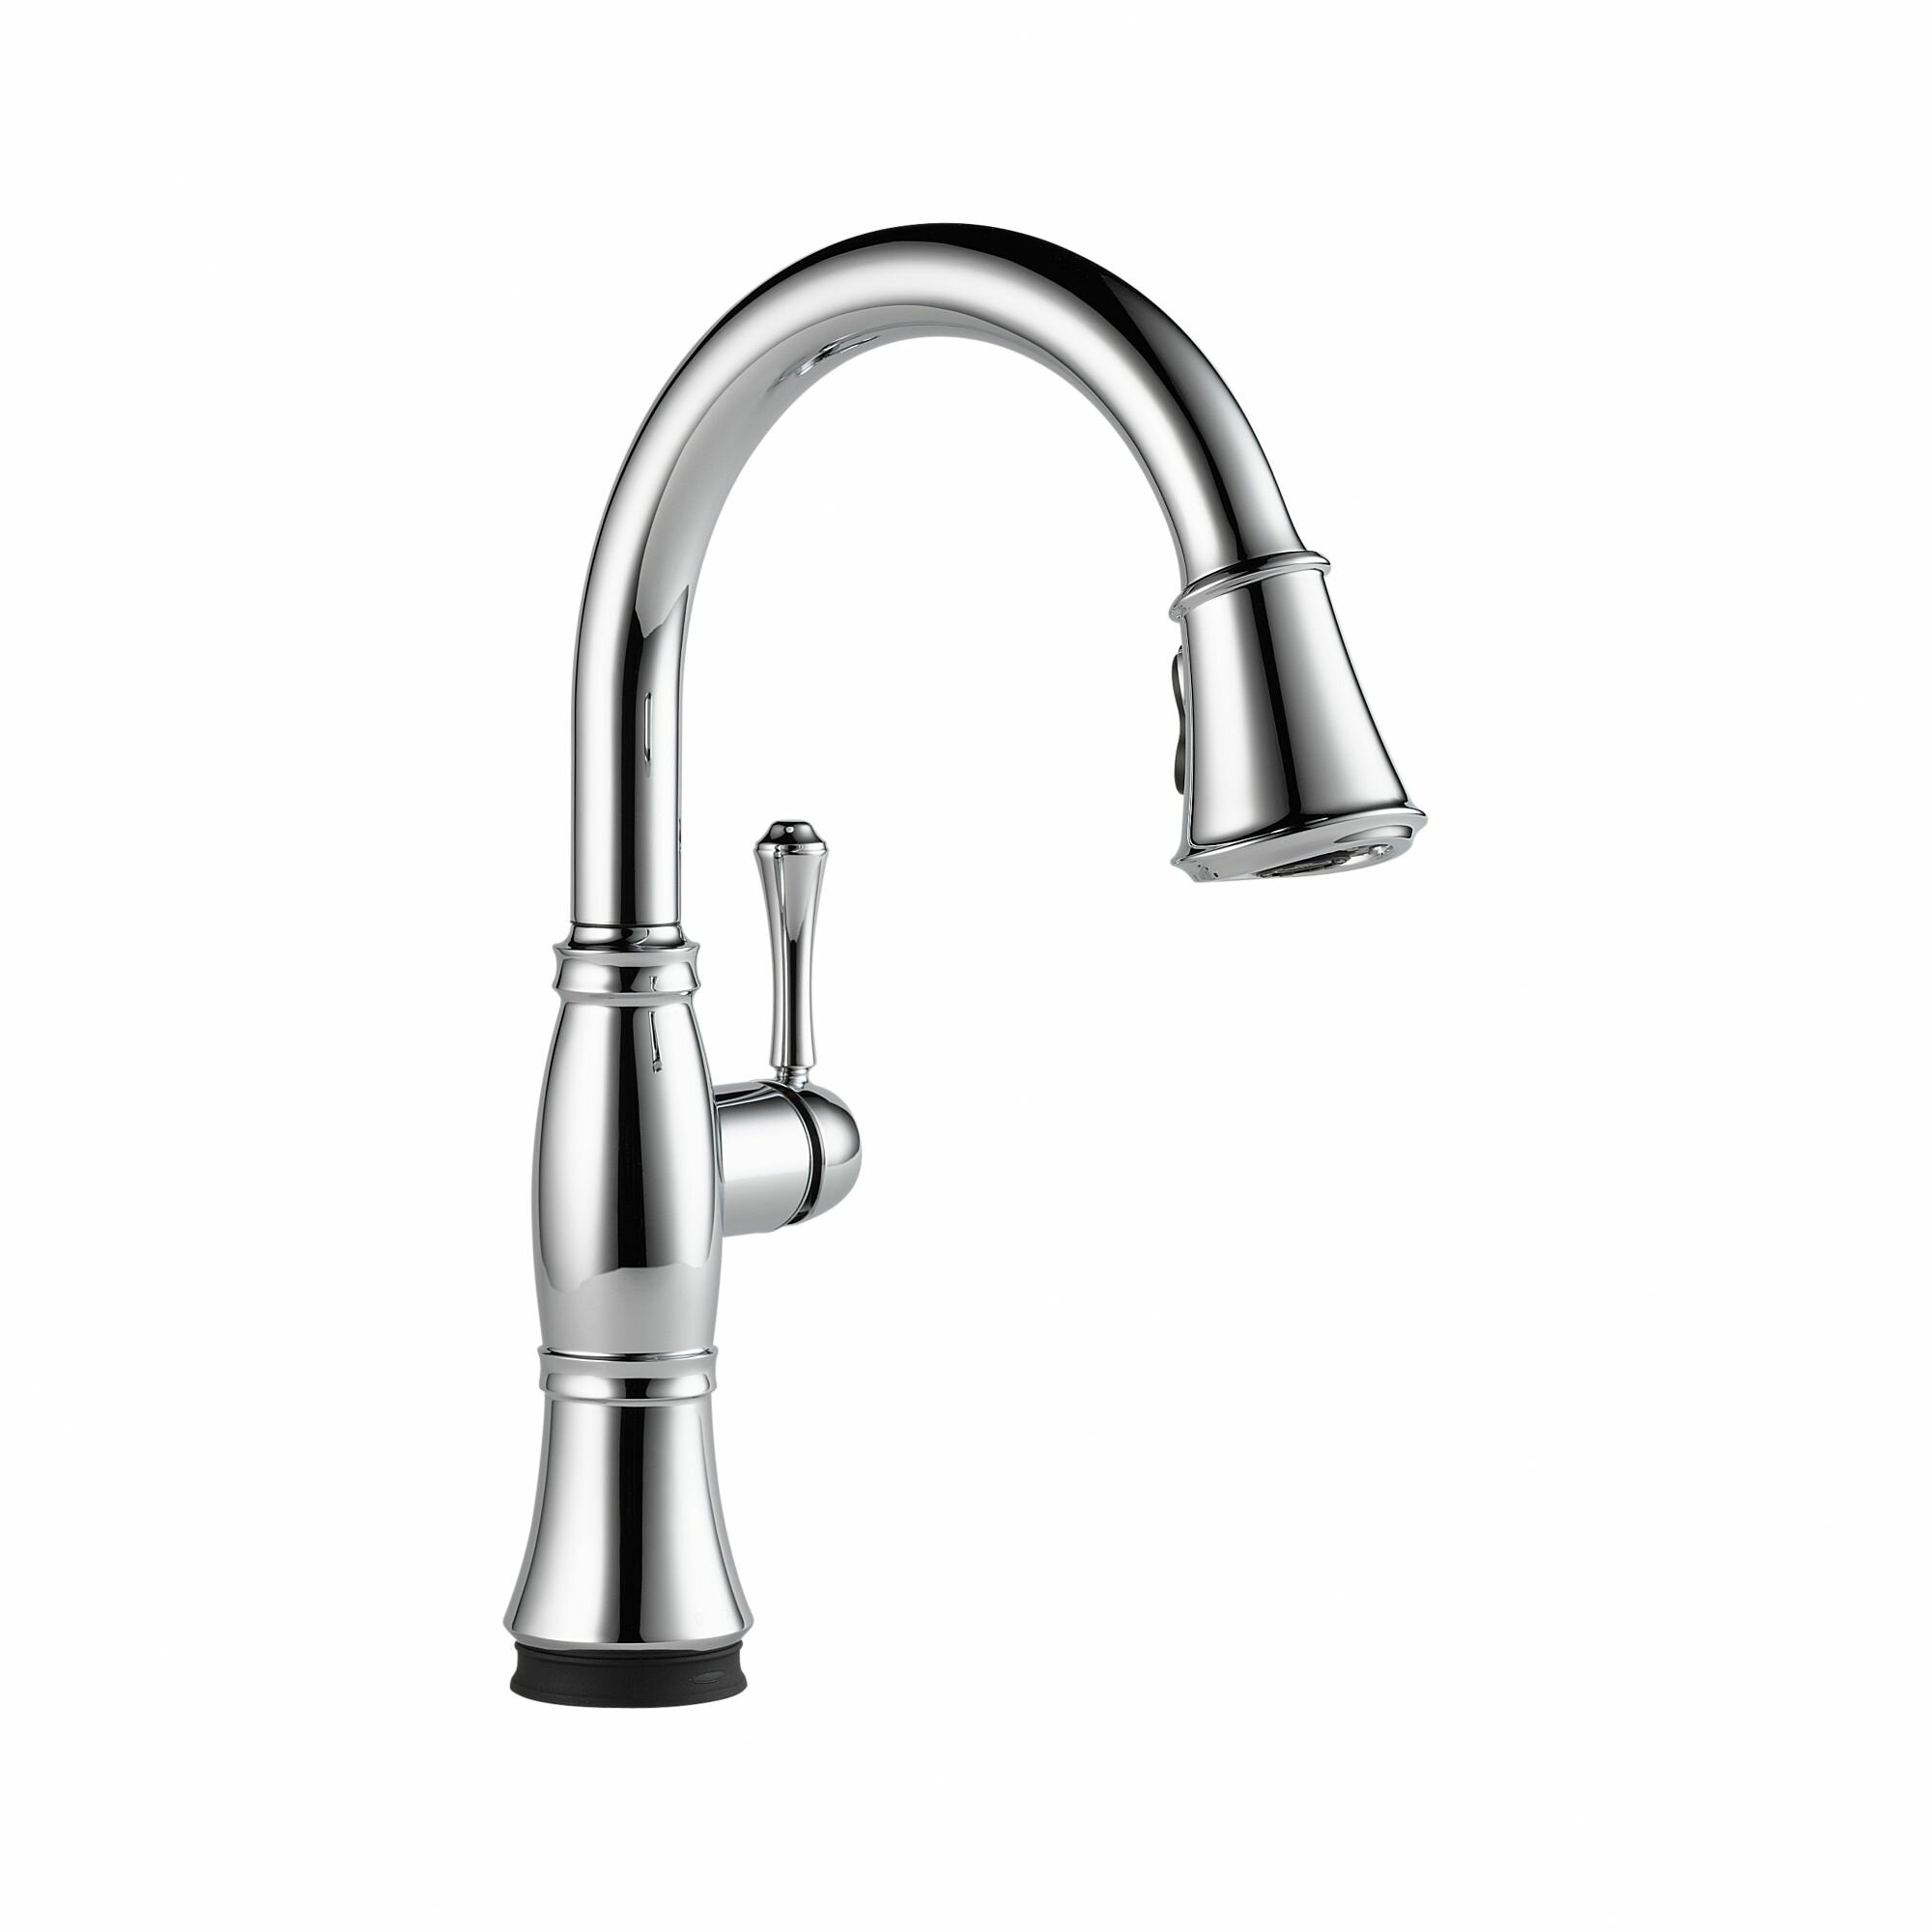 kitchen spray steel com kraususa lever main gooseneck out discontinued stainless pull faucets kpf single faucet with